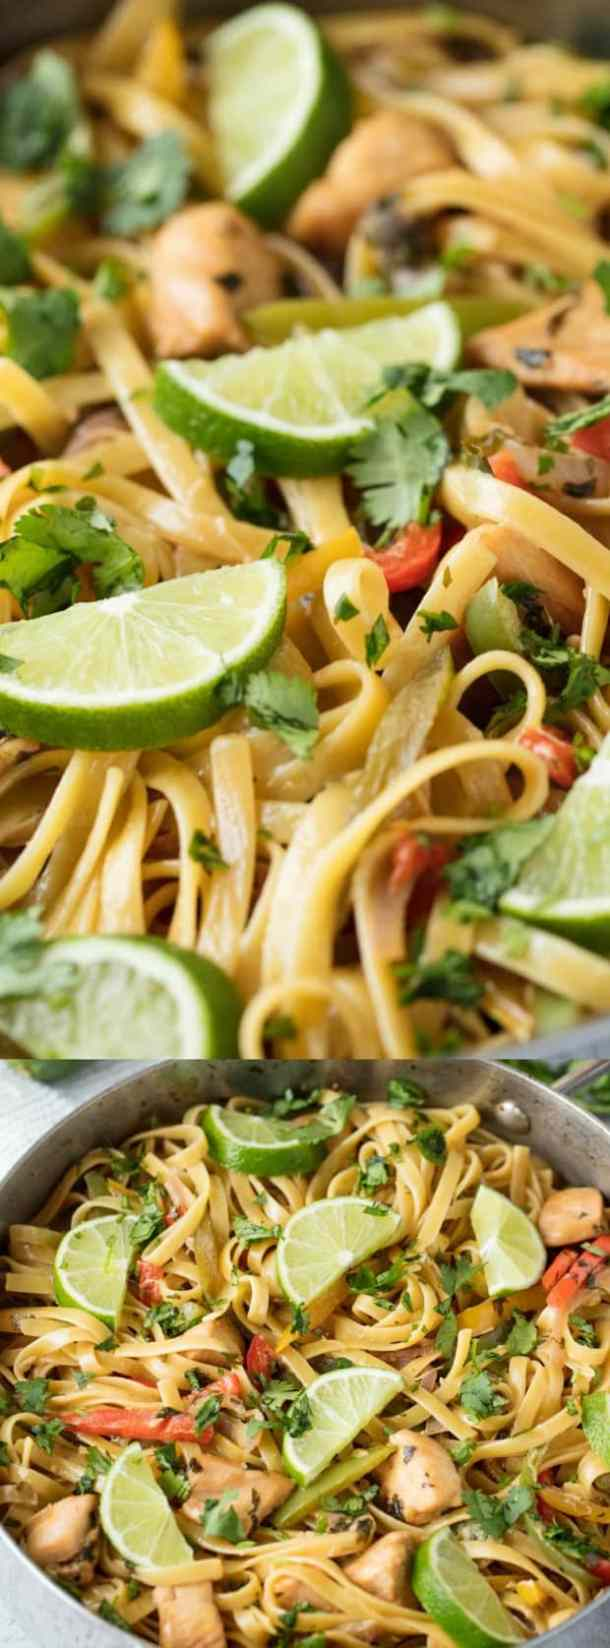 TEQUILA LIME CHICKEN PASTA